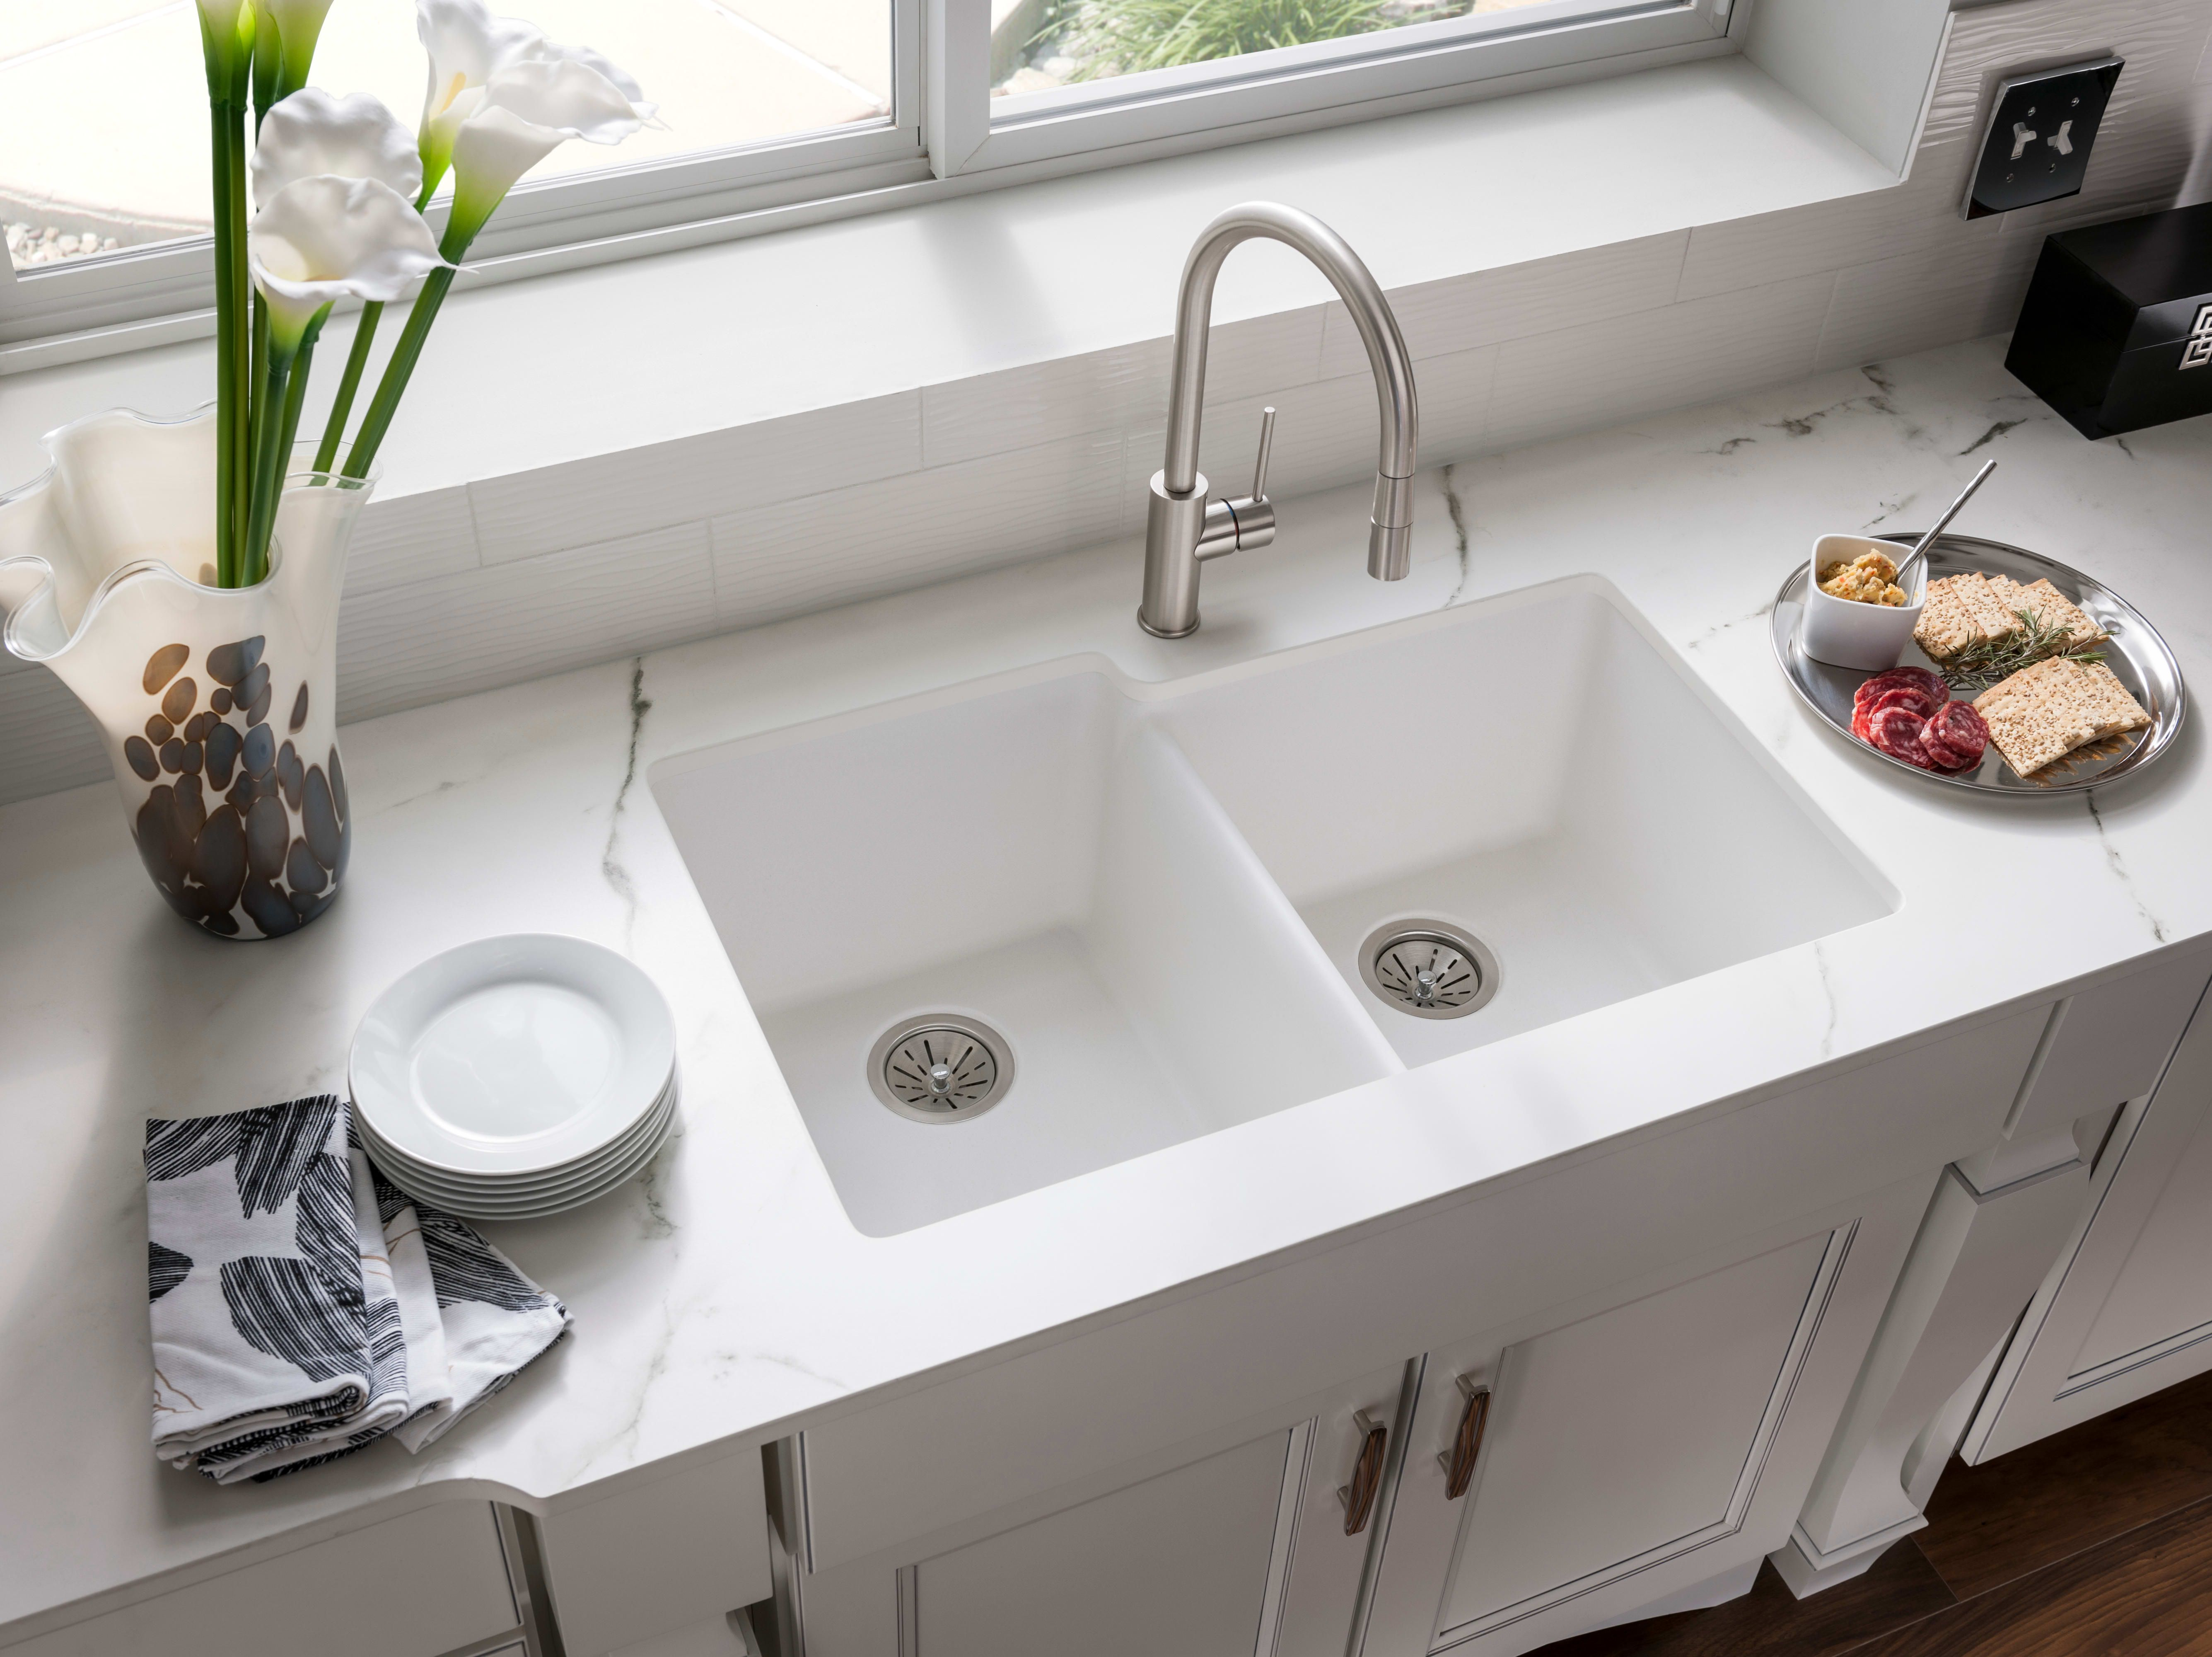 8 Types Of Sinks For Your Kitchen Undermount Kitchen Sinks White Kitchen Sink Best Kitchen Sinks